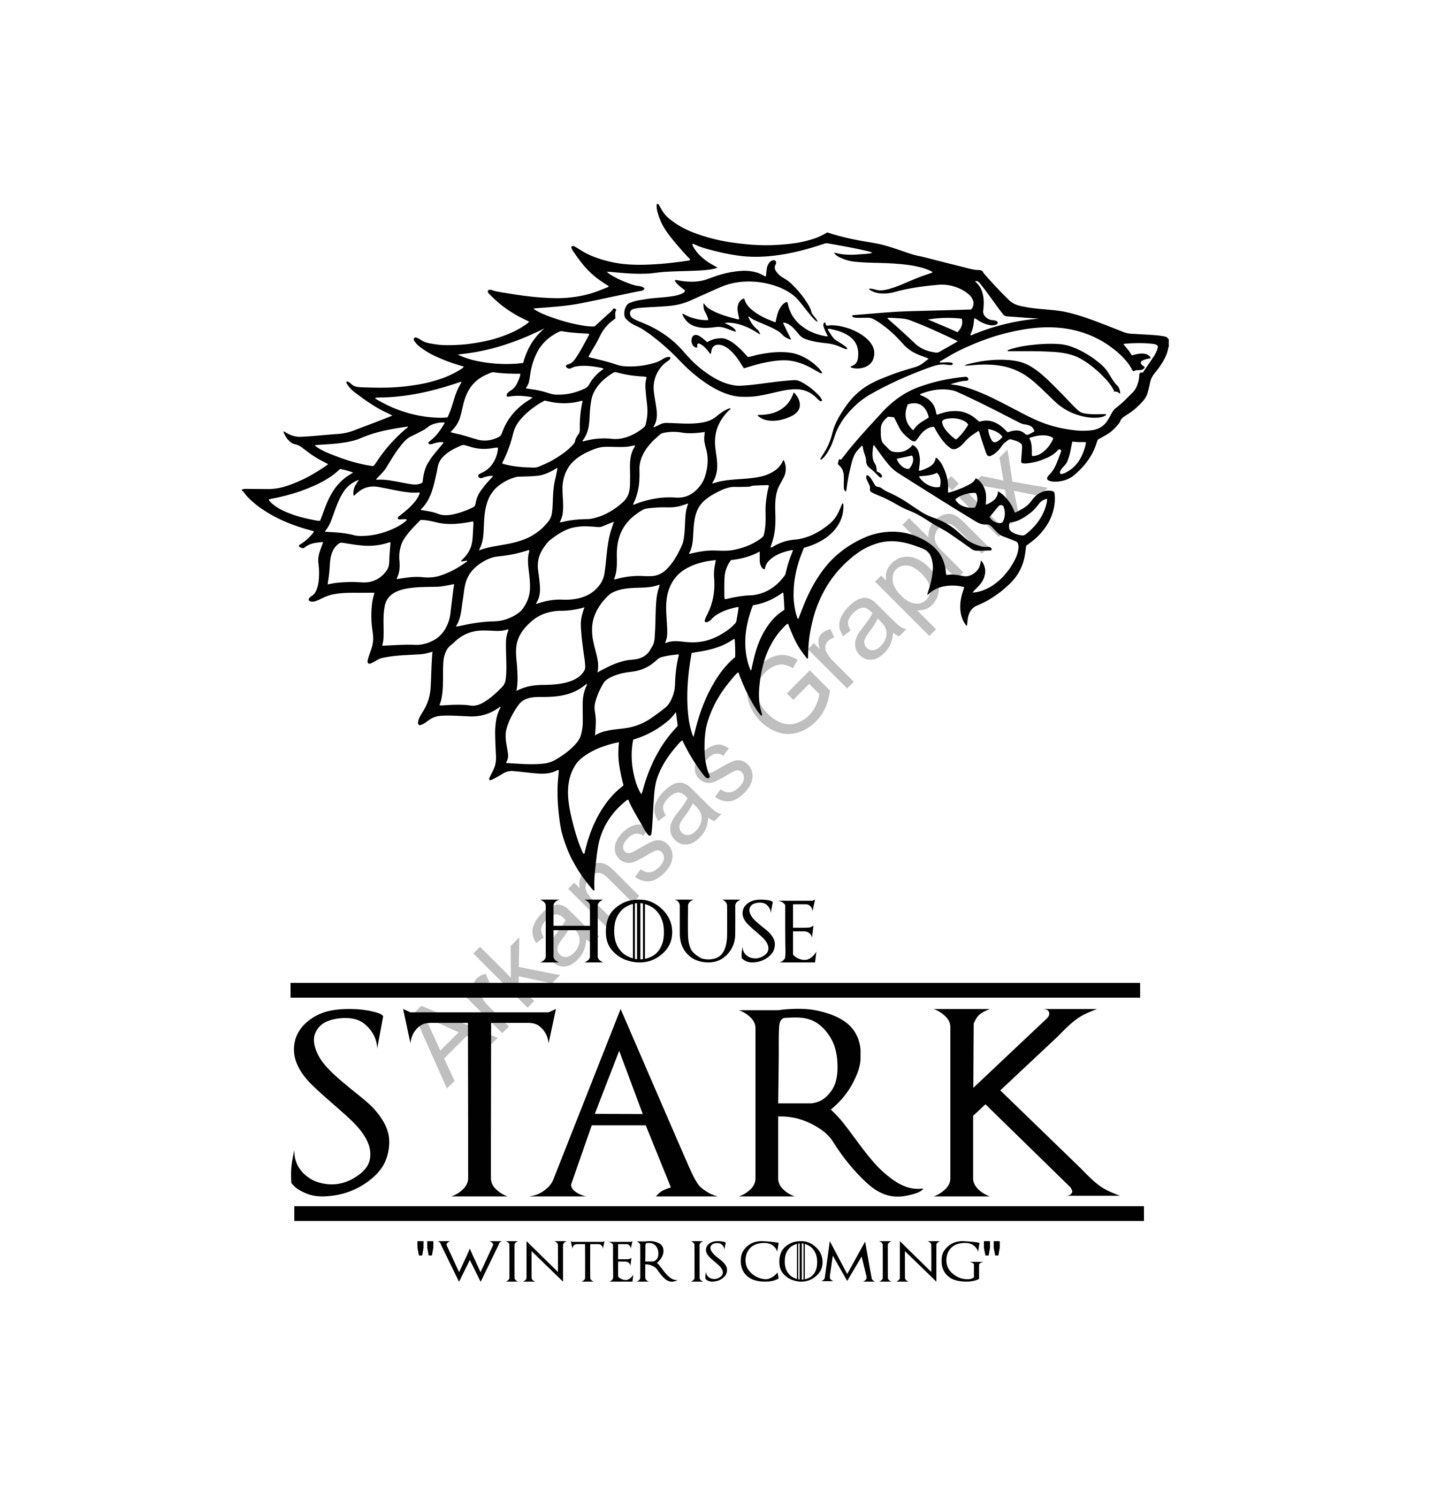 Game of Thrones House Stark Vector/Cuttable Files Eps, AI ...